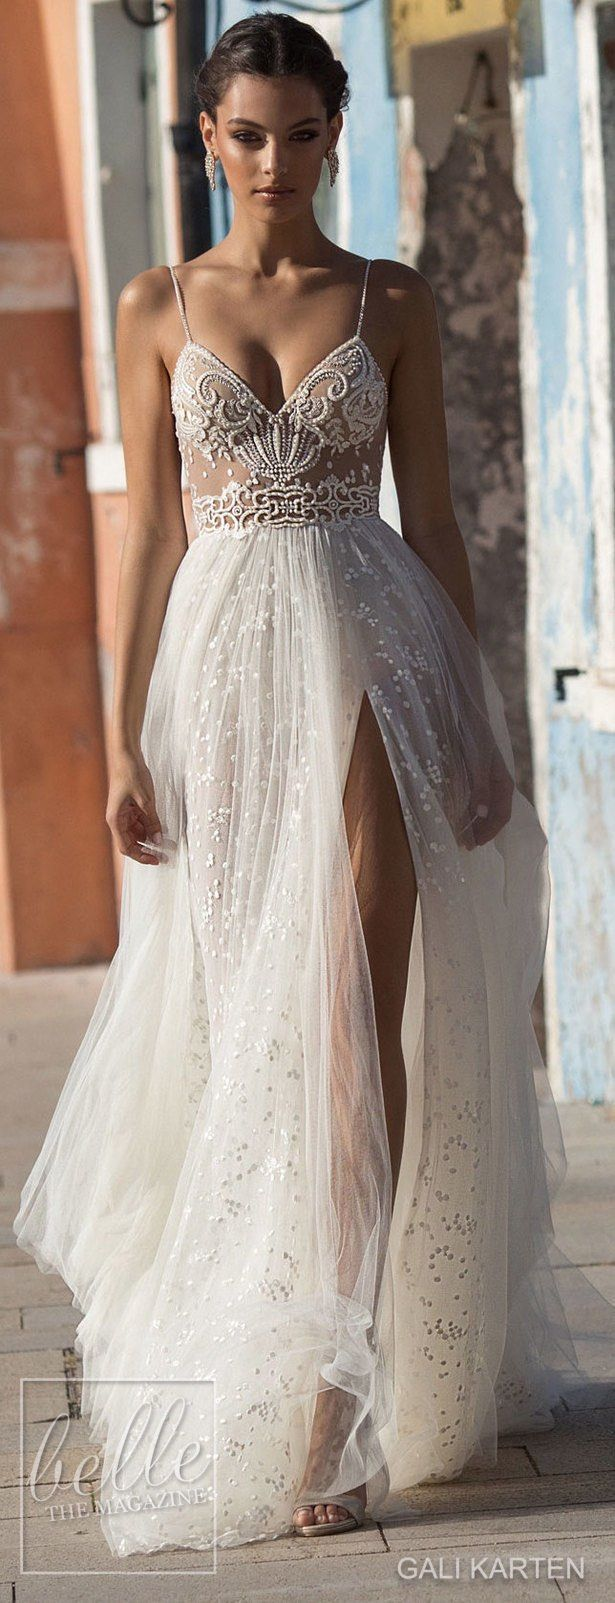 Gali Karten Wedding Dress 2018 - Burano Bridal Collection #weddingdress #bridalgown #weddingdresses